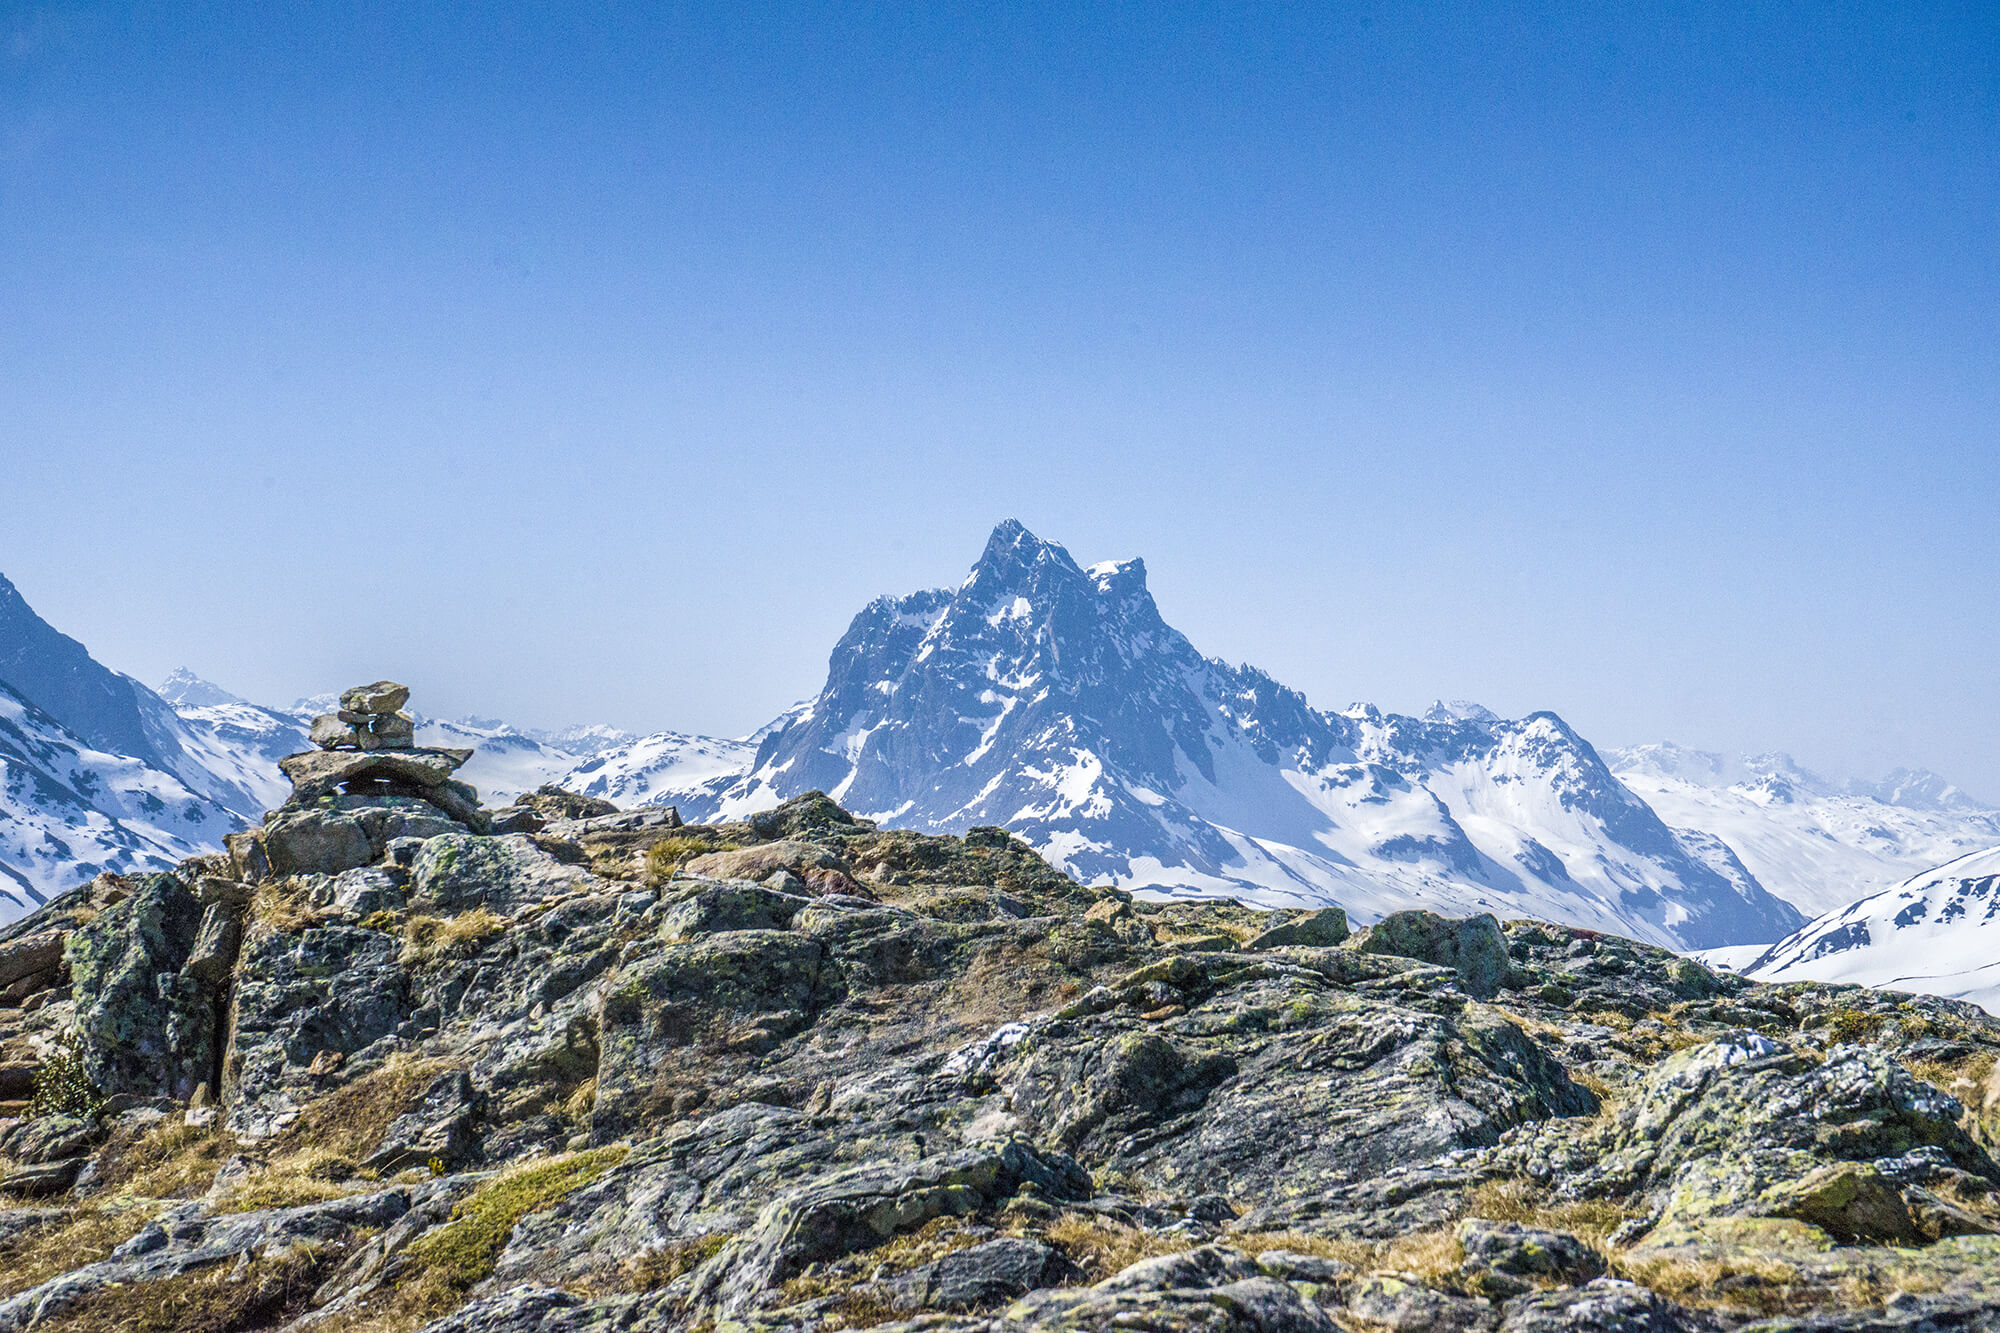 Hiking and mountaineering